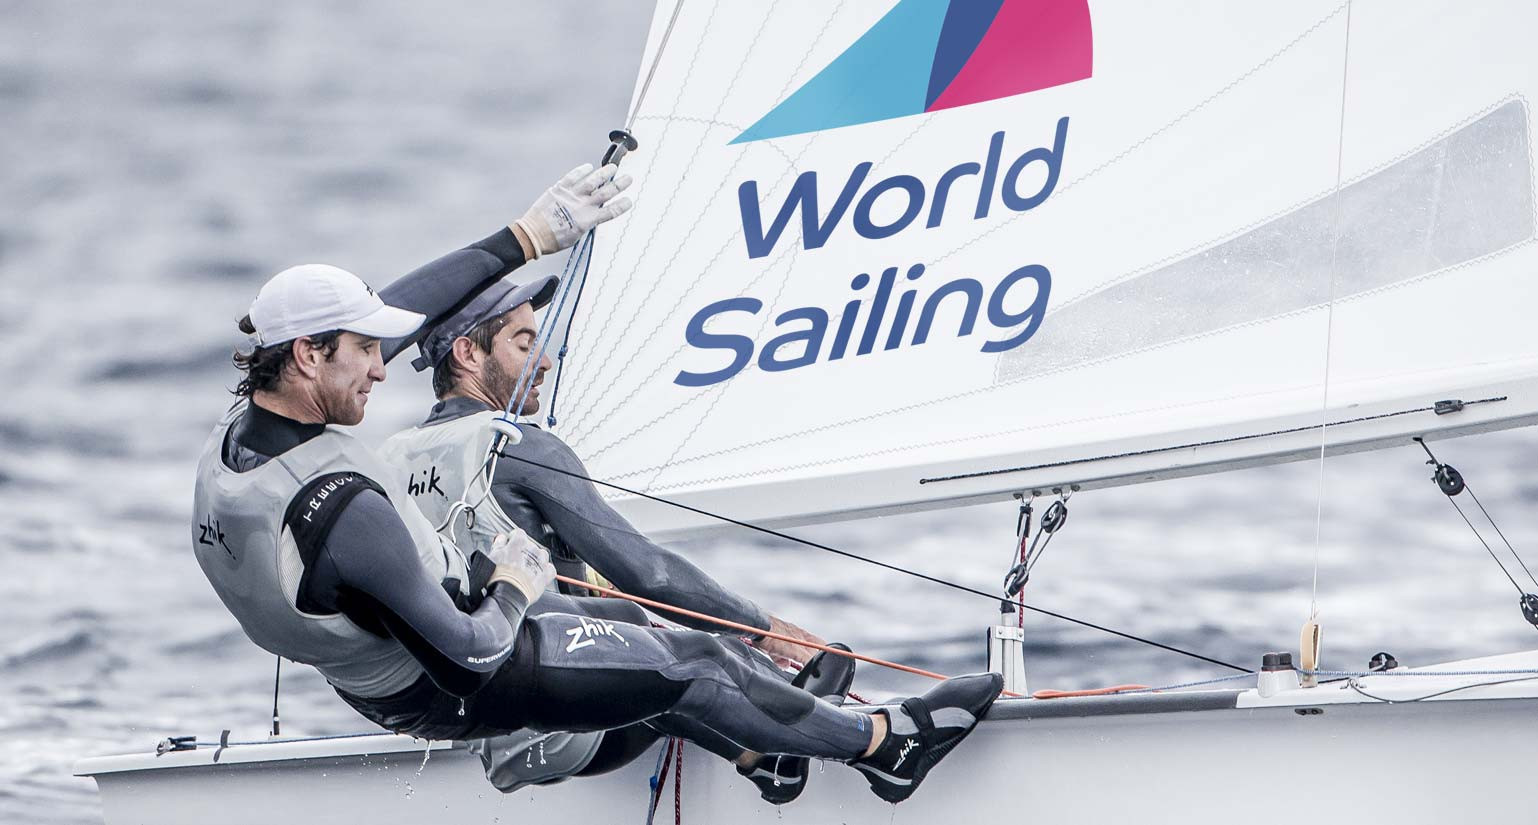 New Zealand lawyer to head World Sailing Governance Commission